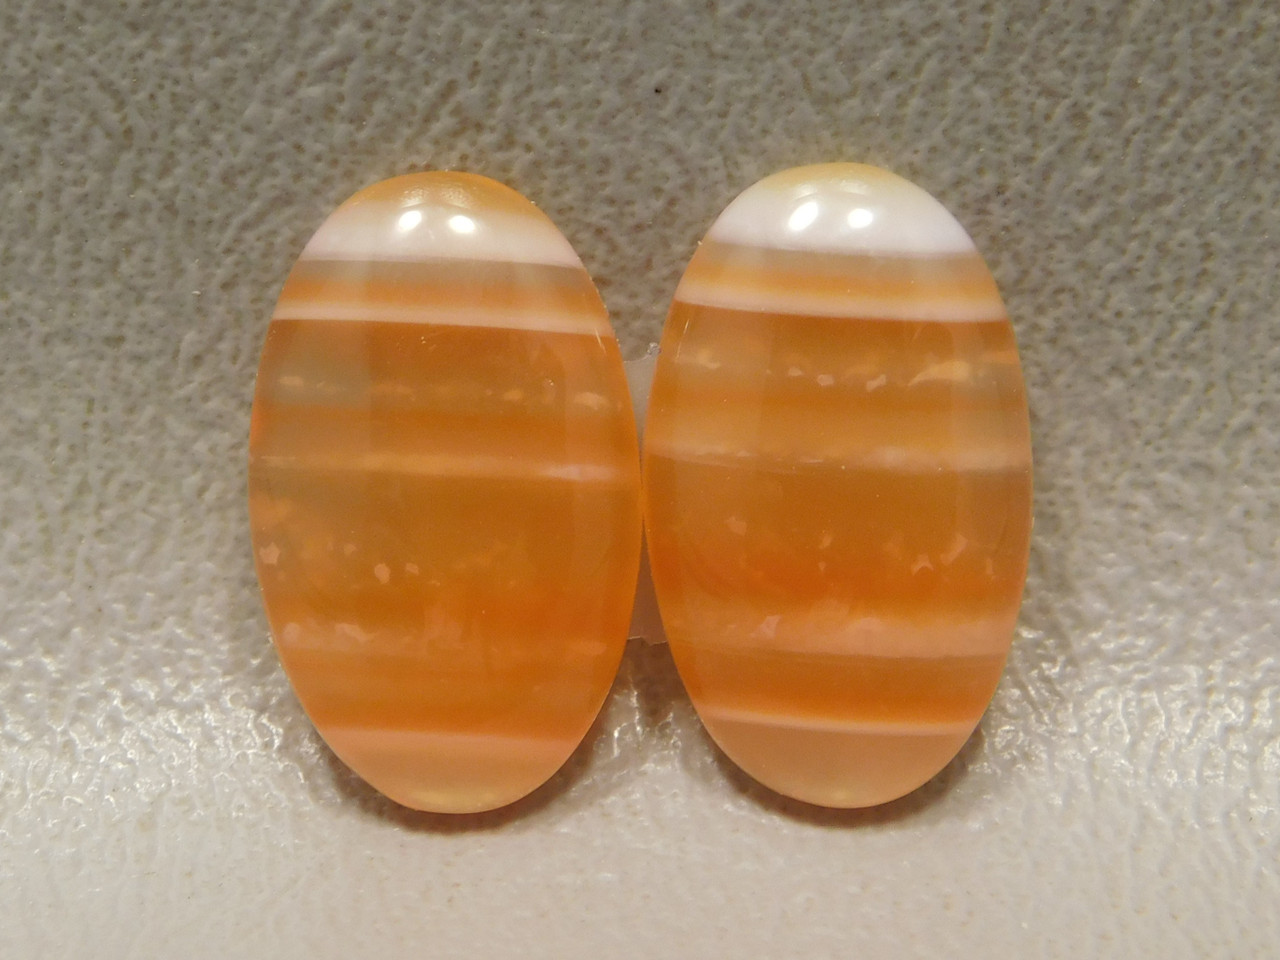 Gemstone Cabochons Orange Banded Carnelian Agate Matched Pair #1